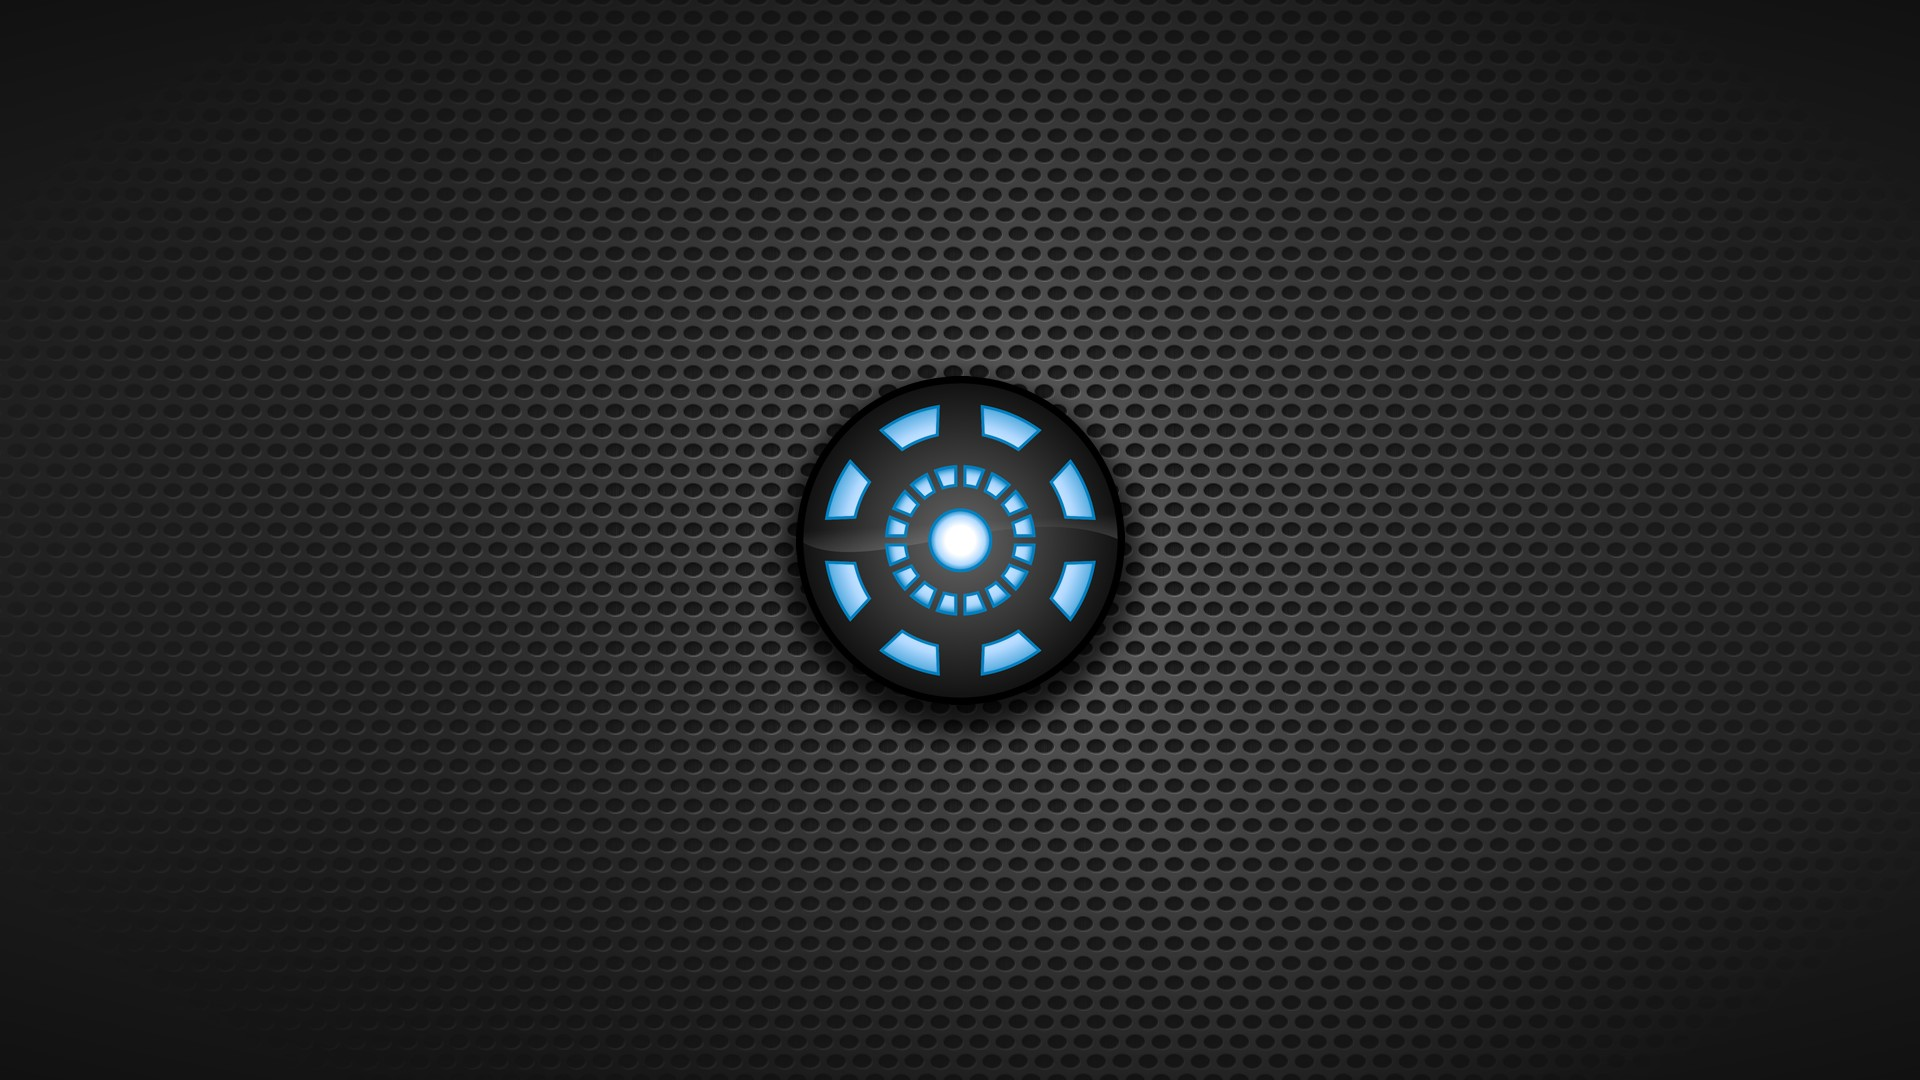 Arc Reactor Wallpaper